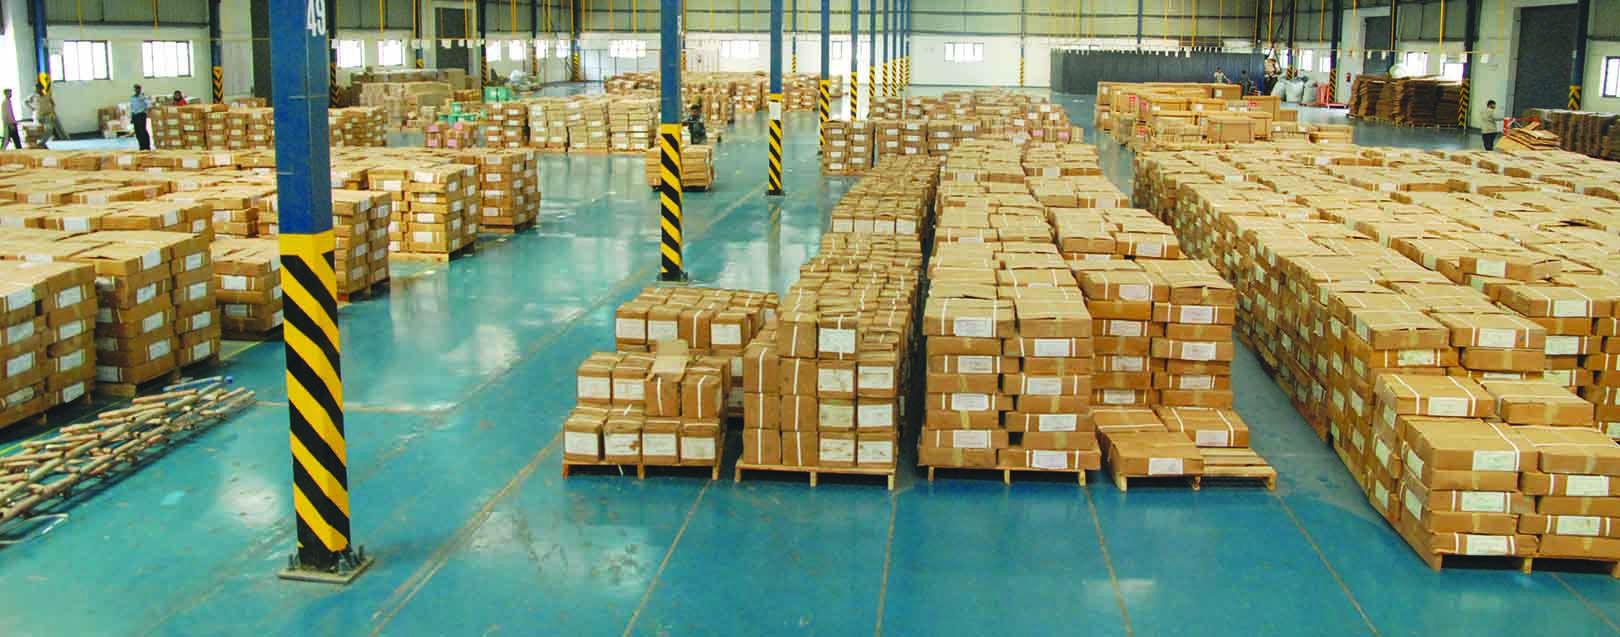 Warehousing In India Changing Gears To Meet Future